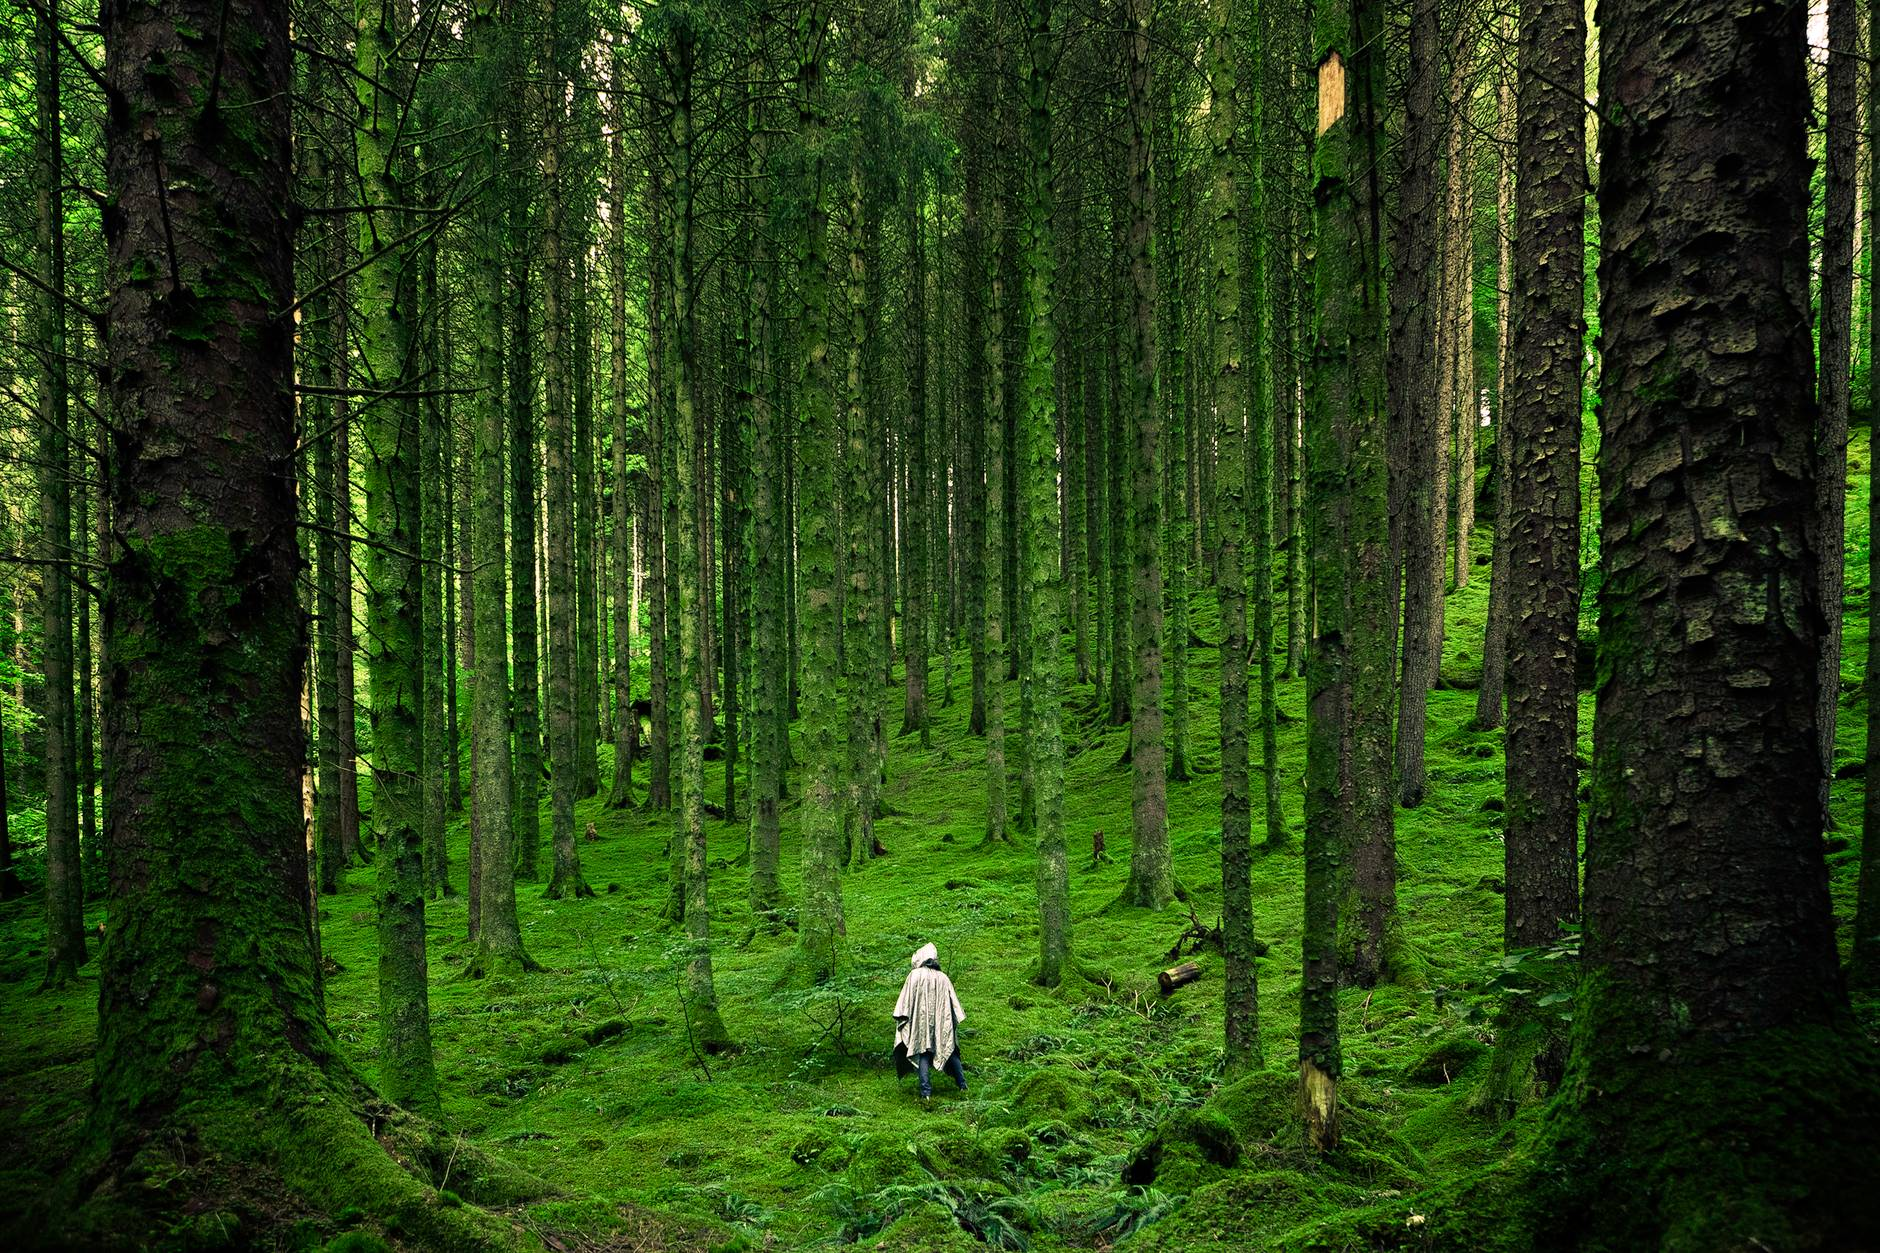 forest hiking trees